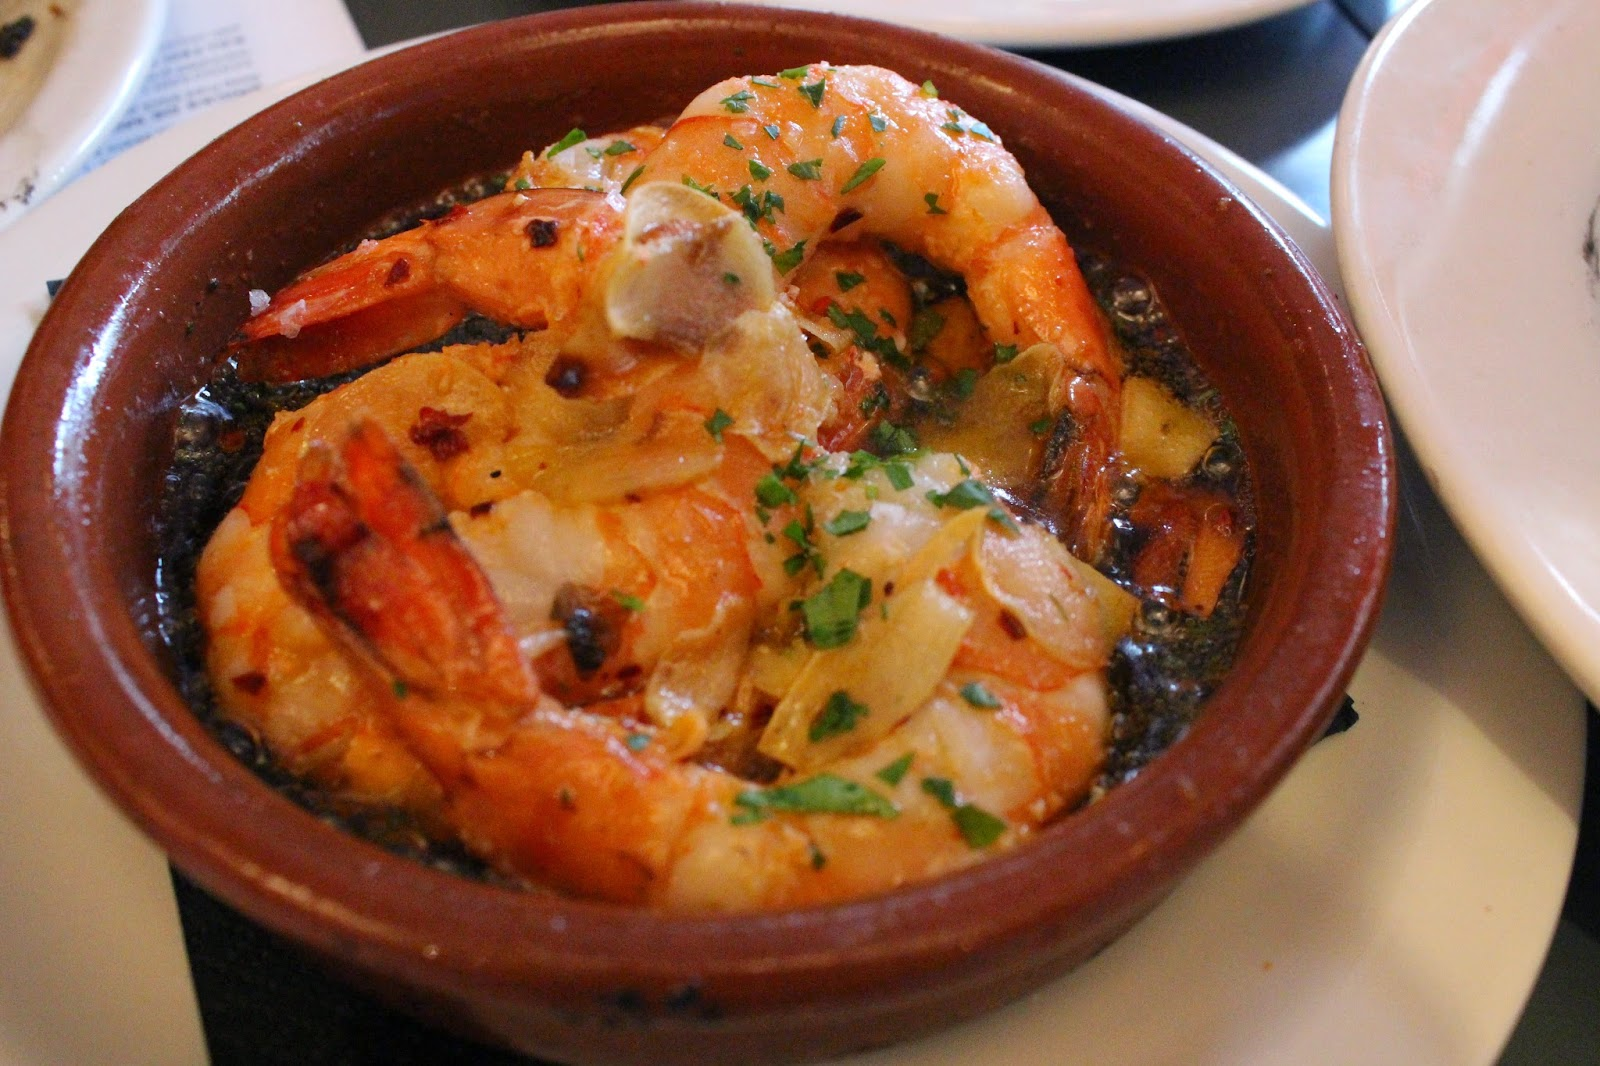 Gambas Al Ajillo: Chill garlic prawns. Moist and juicy prawns with a heavenly smell.